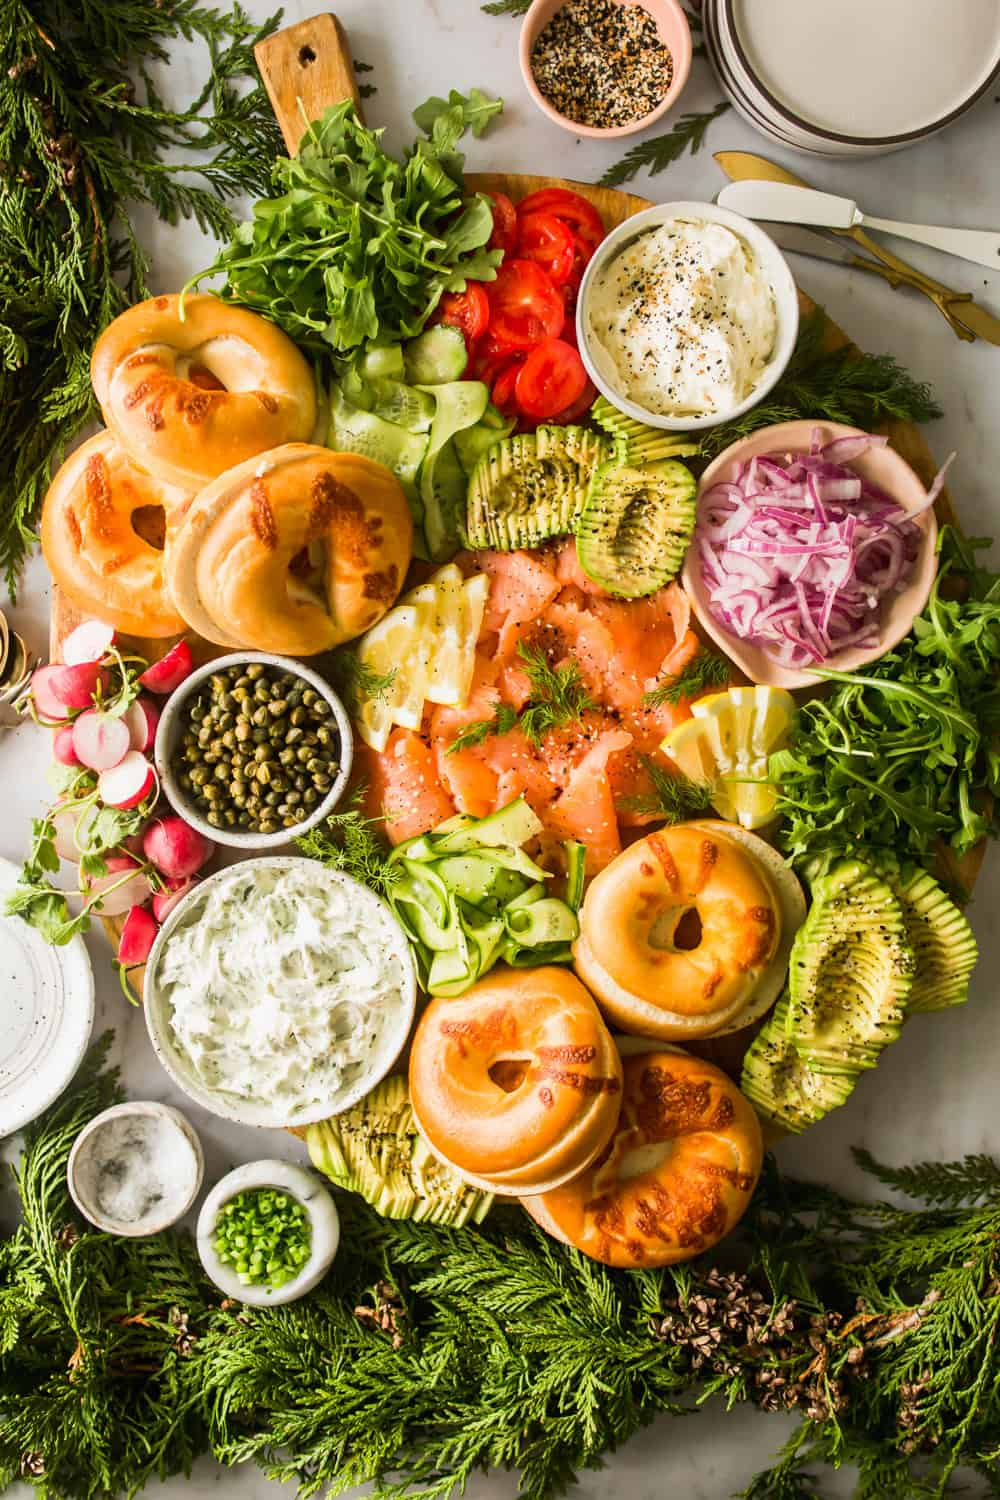 Large platter with bagels, lox, vegetables, and cream cheese